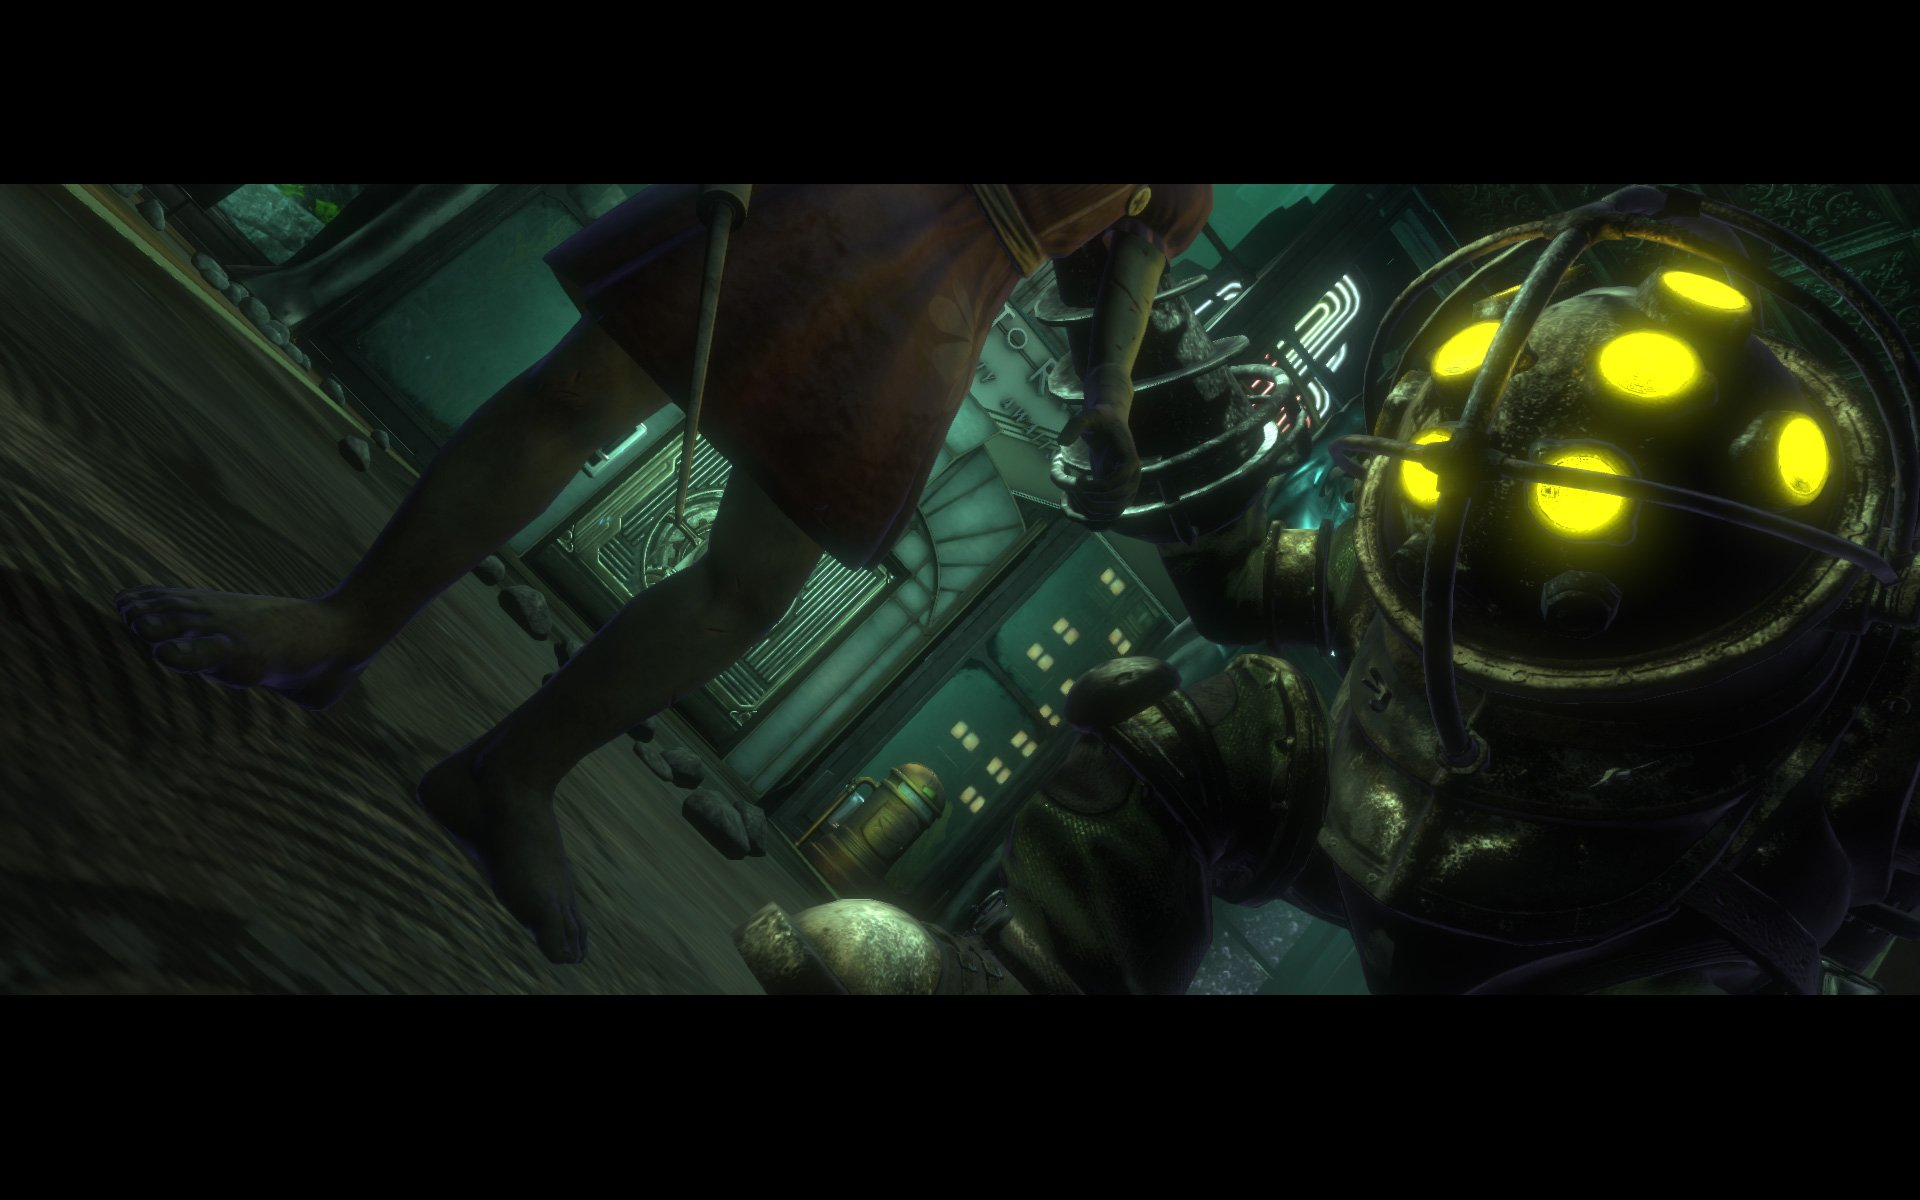 bioshock_the_collection-3438176.jpg